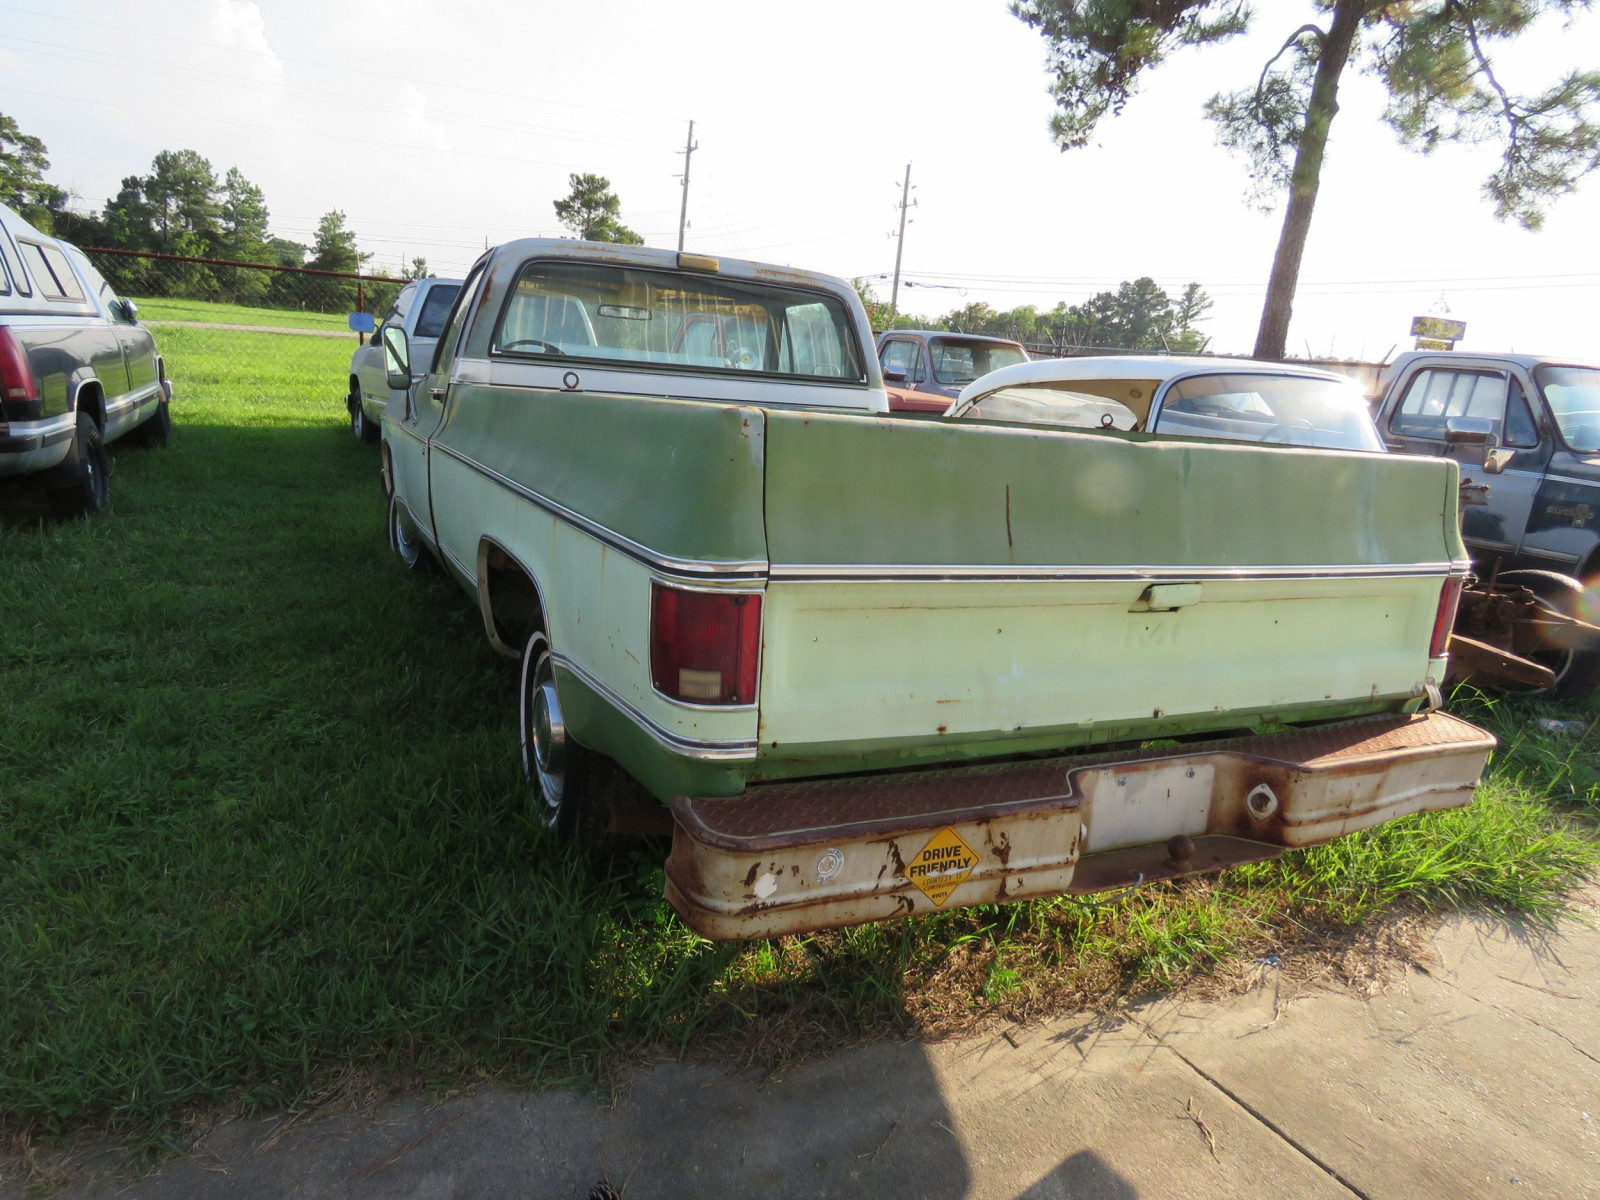 1976 GMC High Sierra 1/2 ton Pickup - Image 2